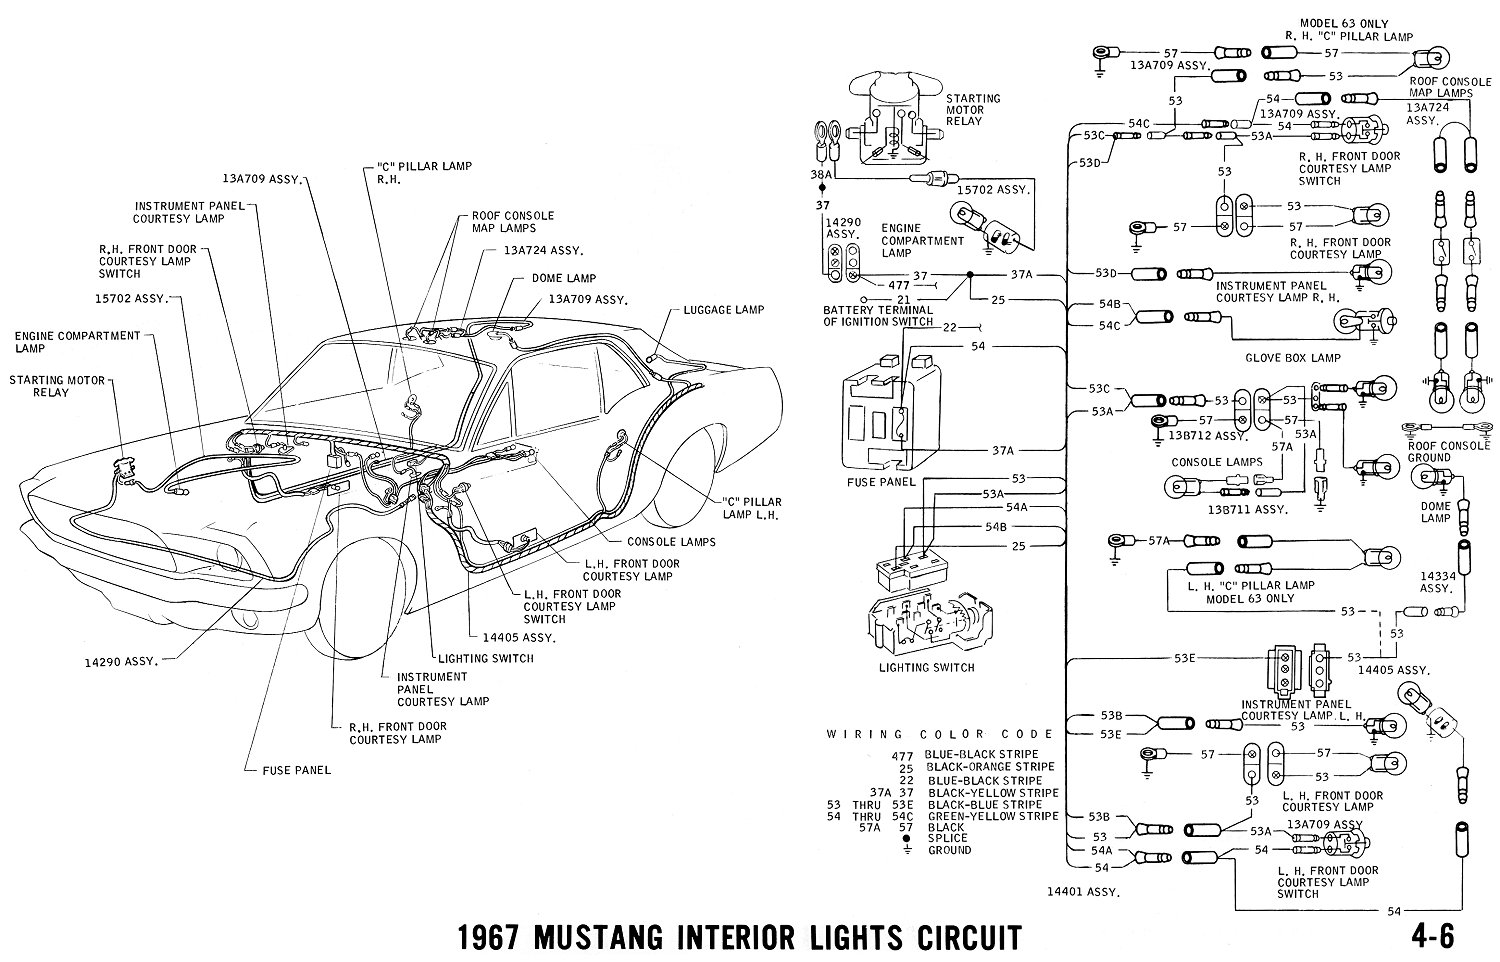 1999 mustang vacuum diagram 68 mustang underdash wiring. looking at the wiring ... 68 mustang vacuum diagram